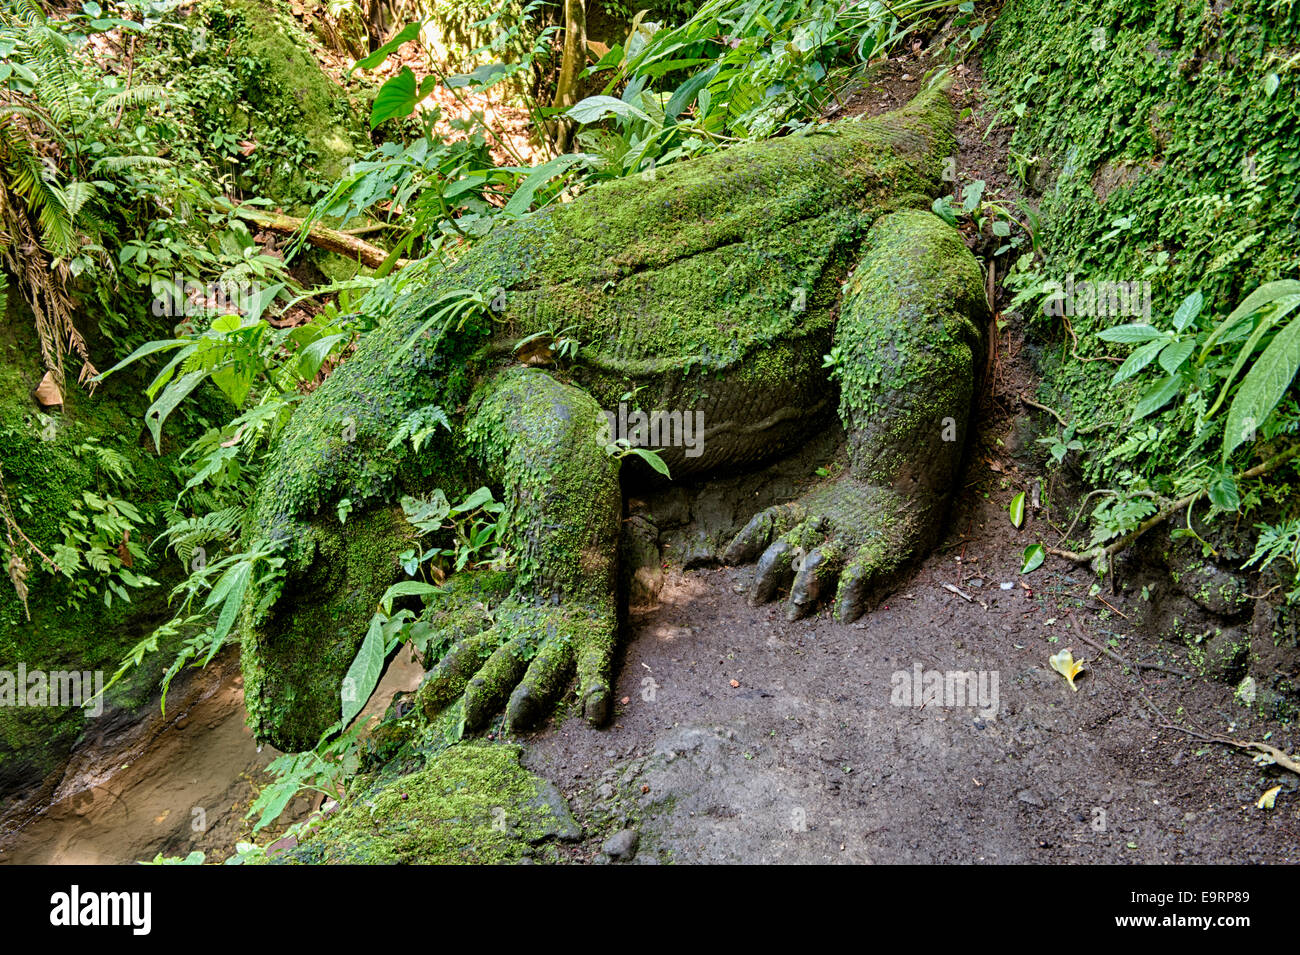 Stone carving of a Komodo Dragon, Sacred Monkey Forest, Ubud, Bali, Indonesia - Stock Image